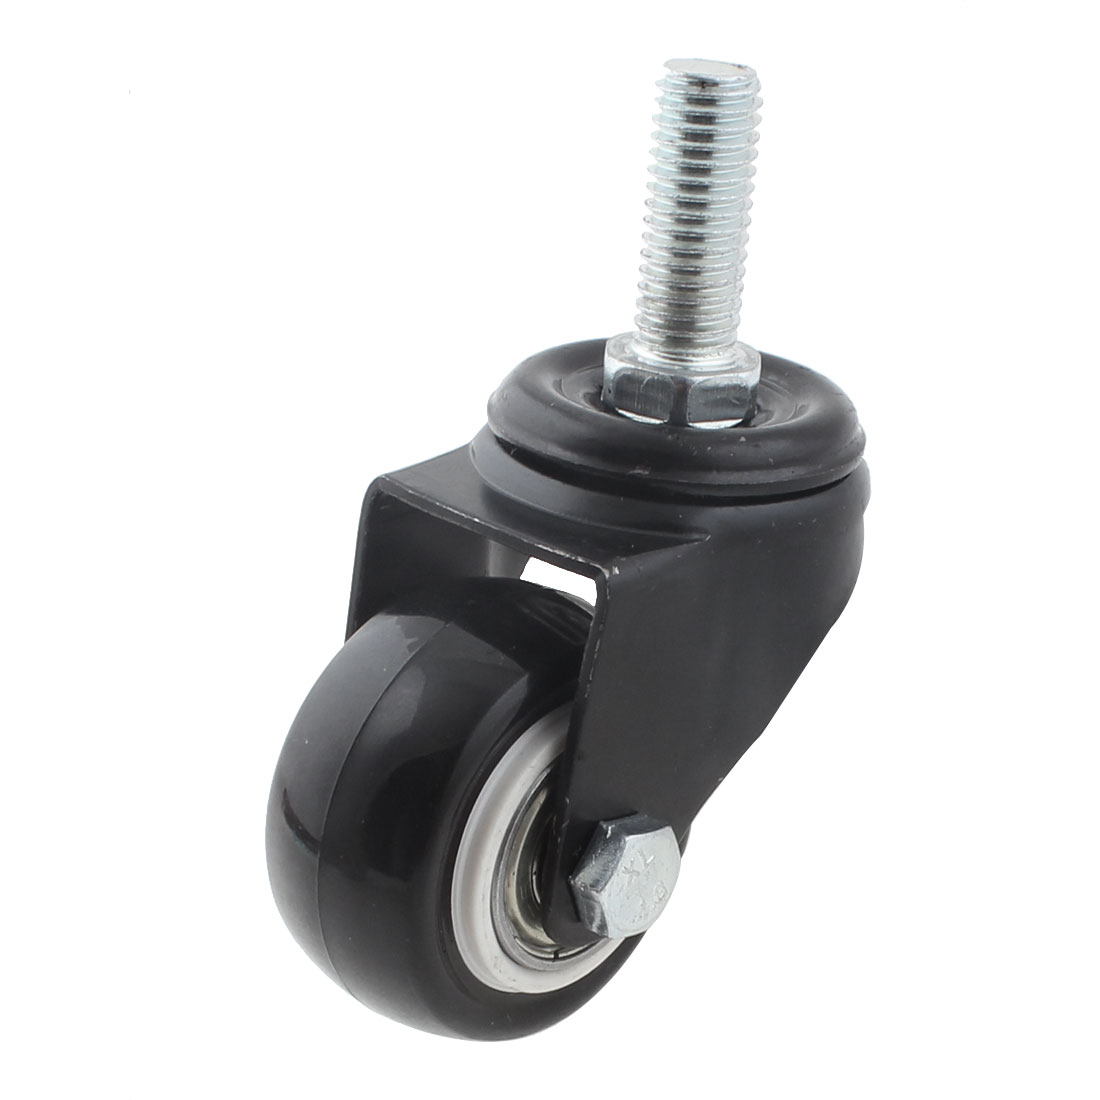 chair casters threaded stem shower home depot 10mm x 25mm replacement office swivel